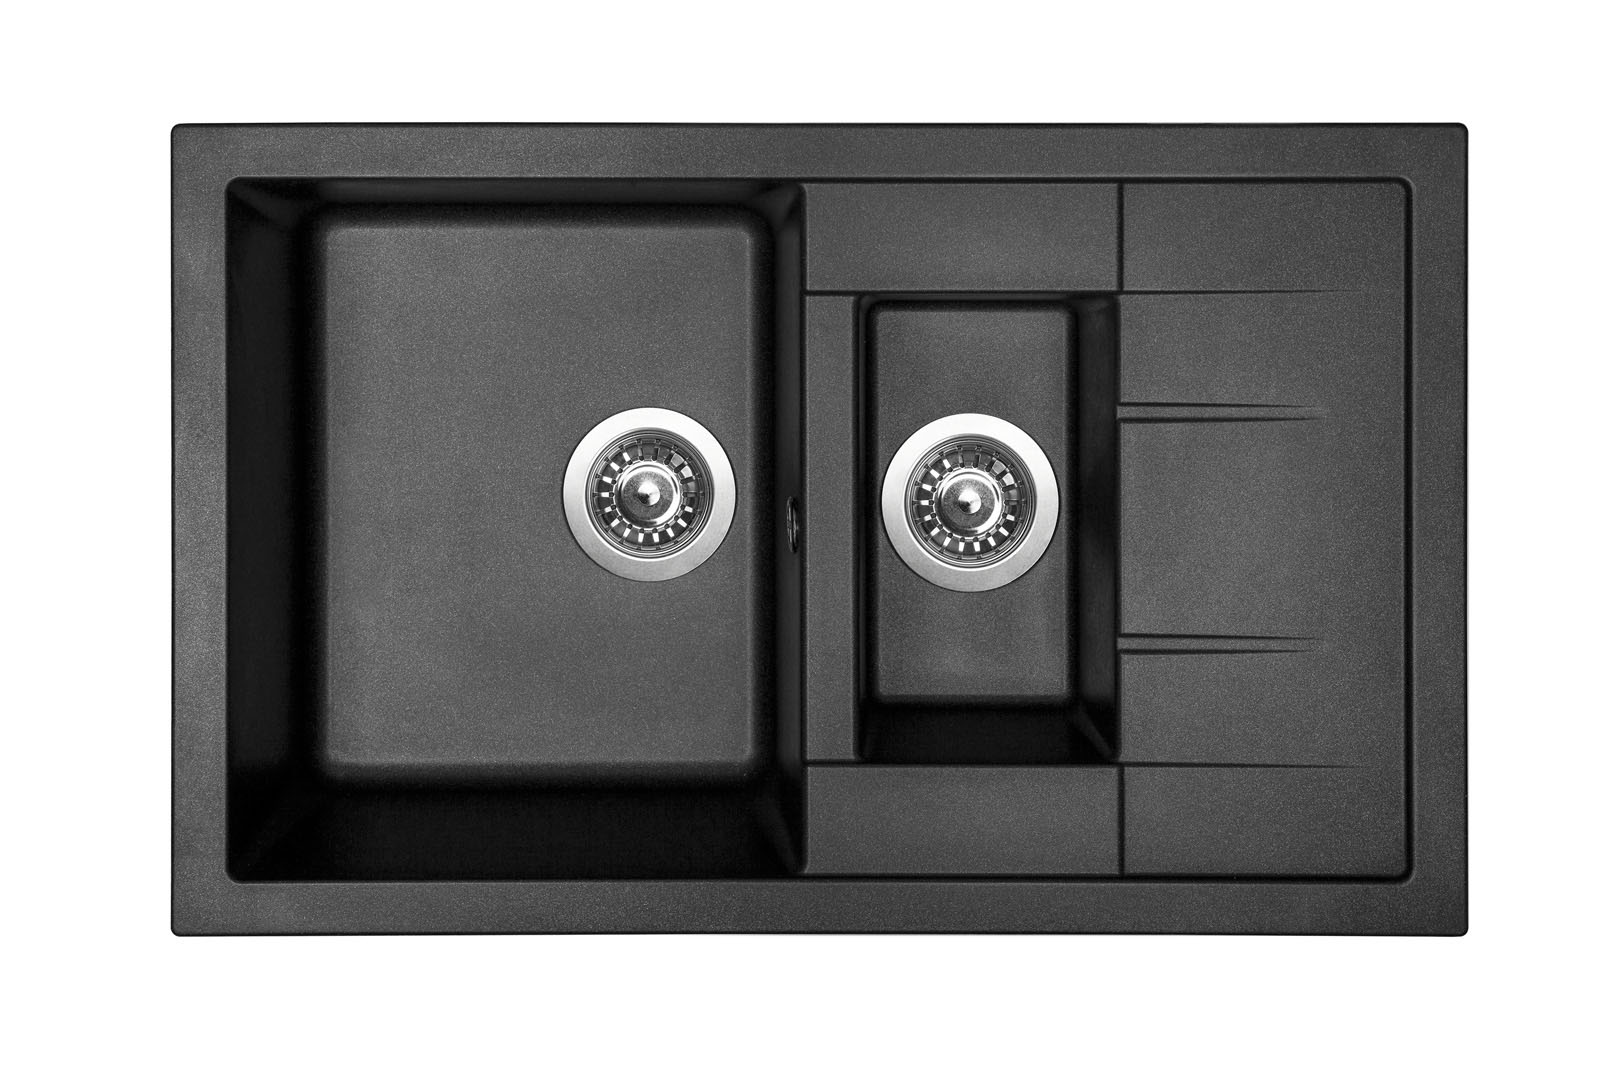 Sinks CRYSTAL 780.1 Metalblack